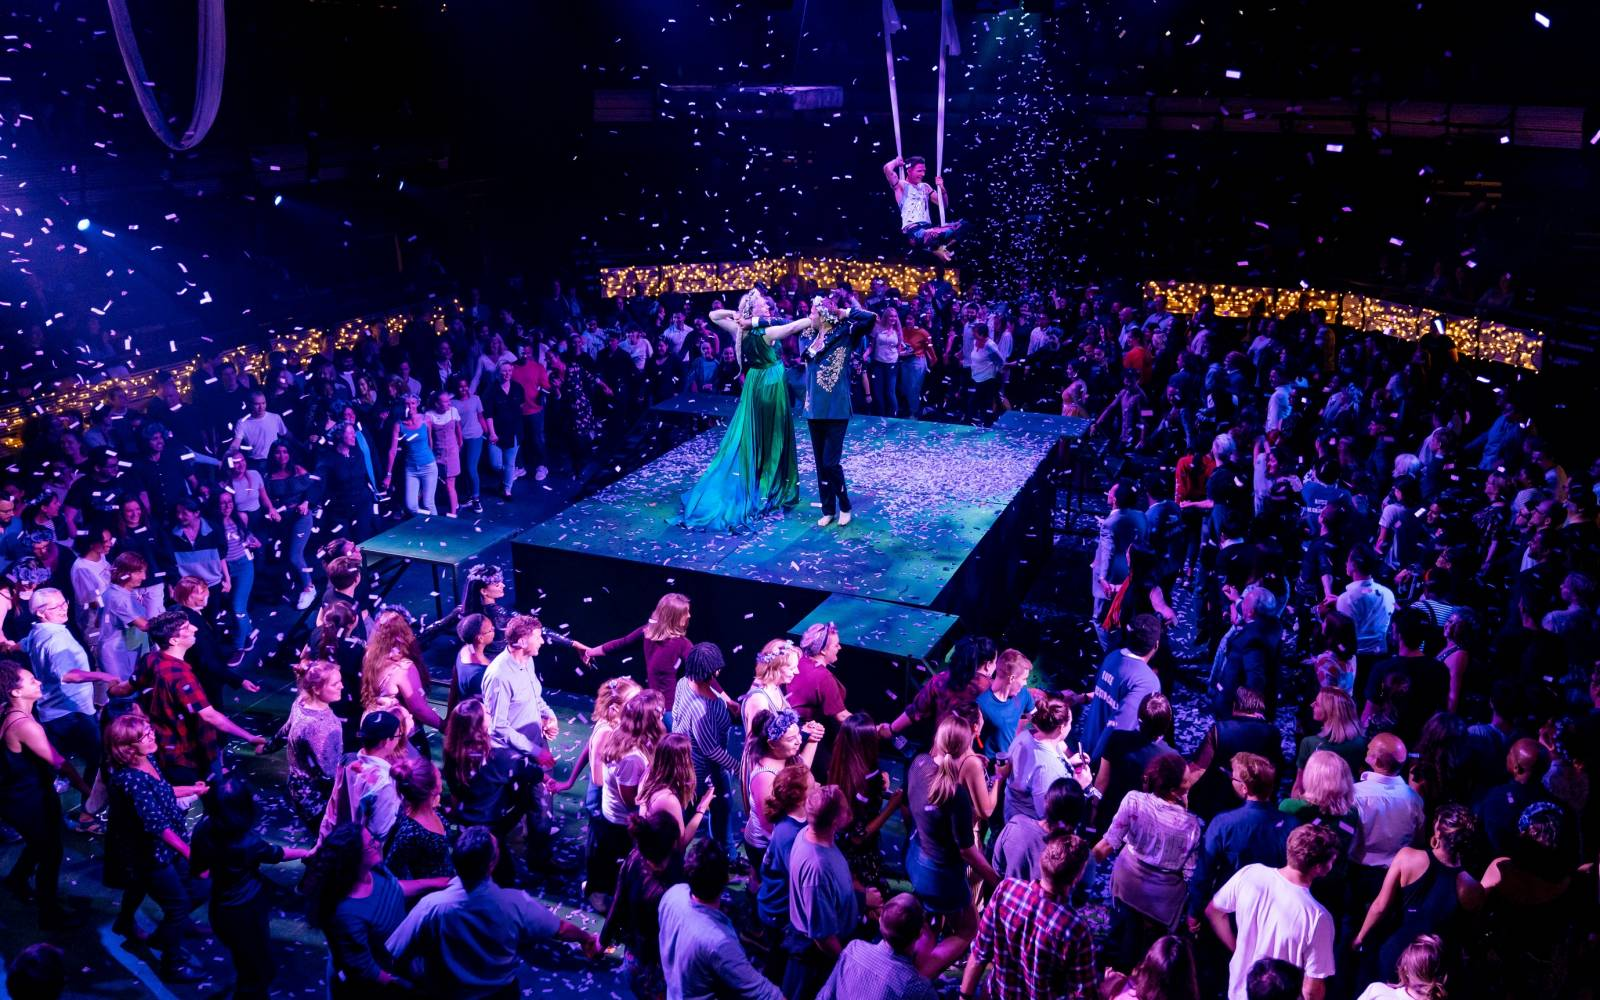 Gwendoline Christie (Titania) and Oliver Chris (Oberon) dance together under falling confetti, surrounded by a crowd